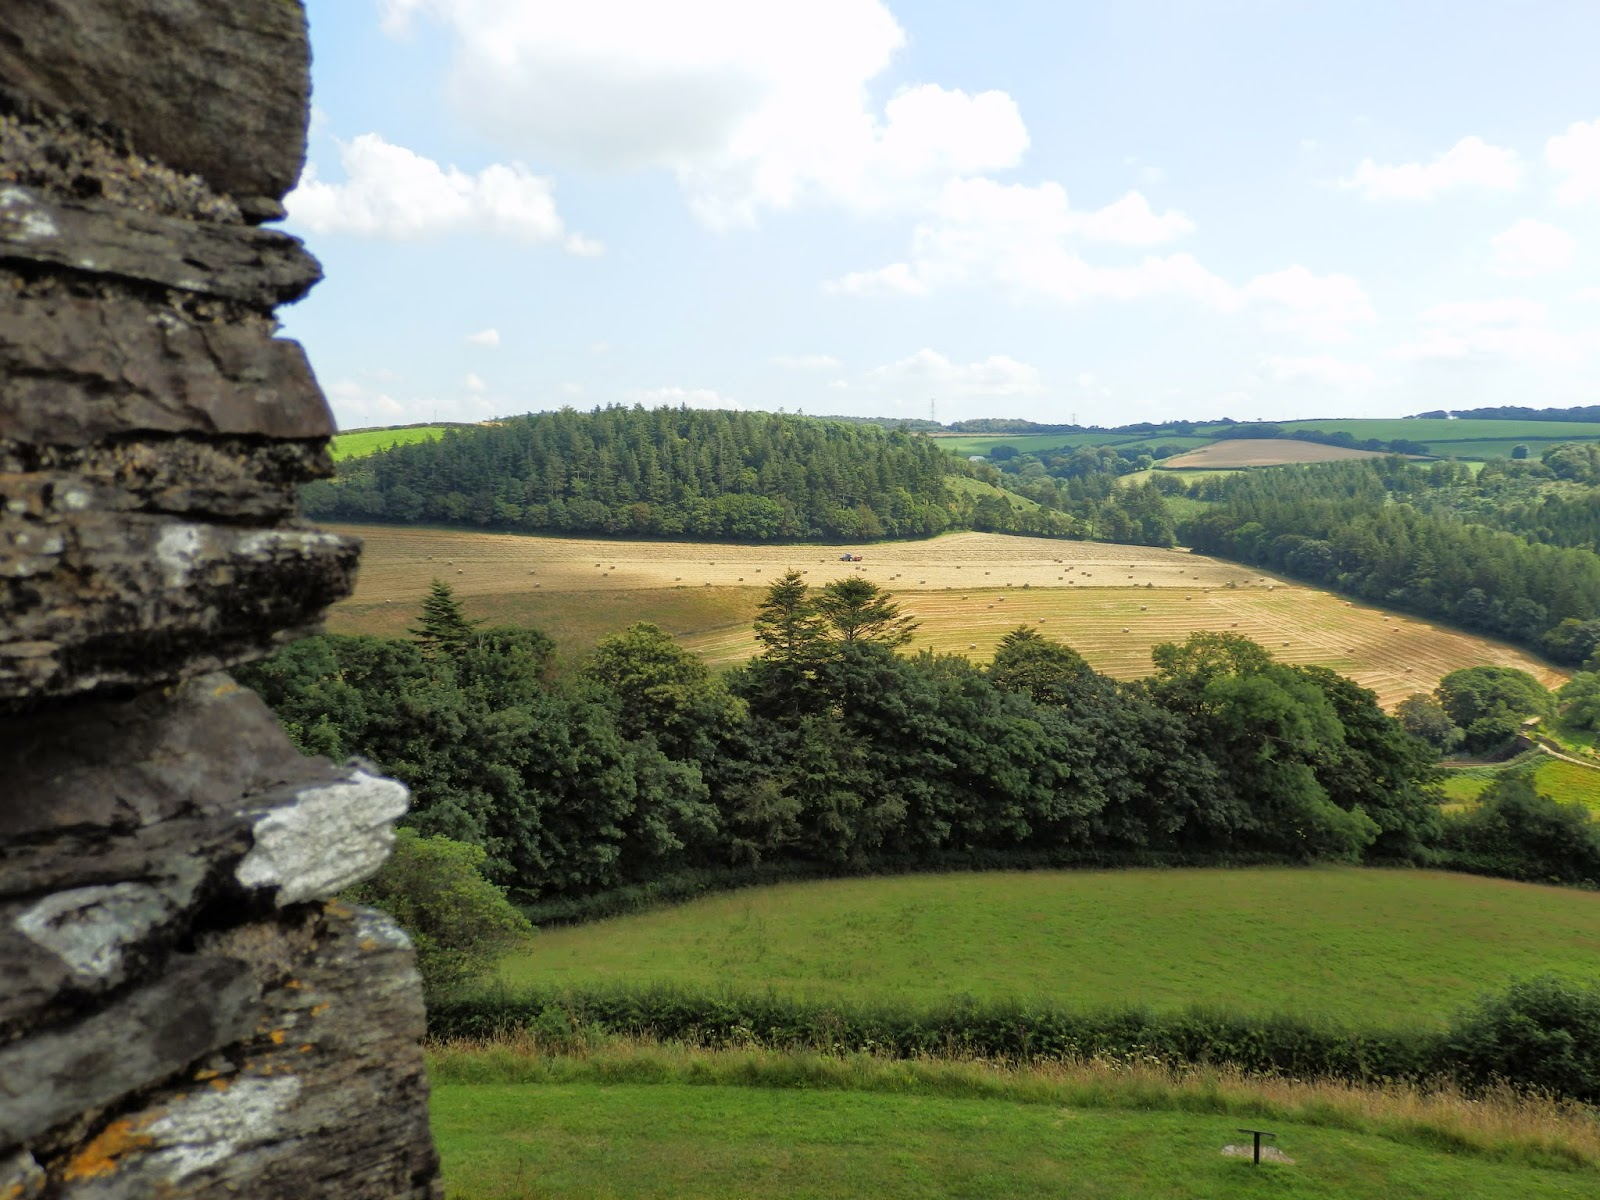 View from Restormel Castle battlements